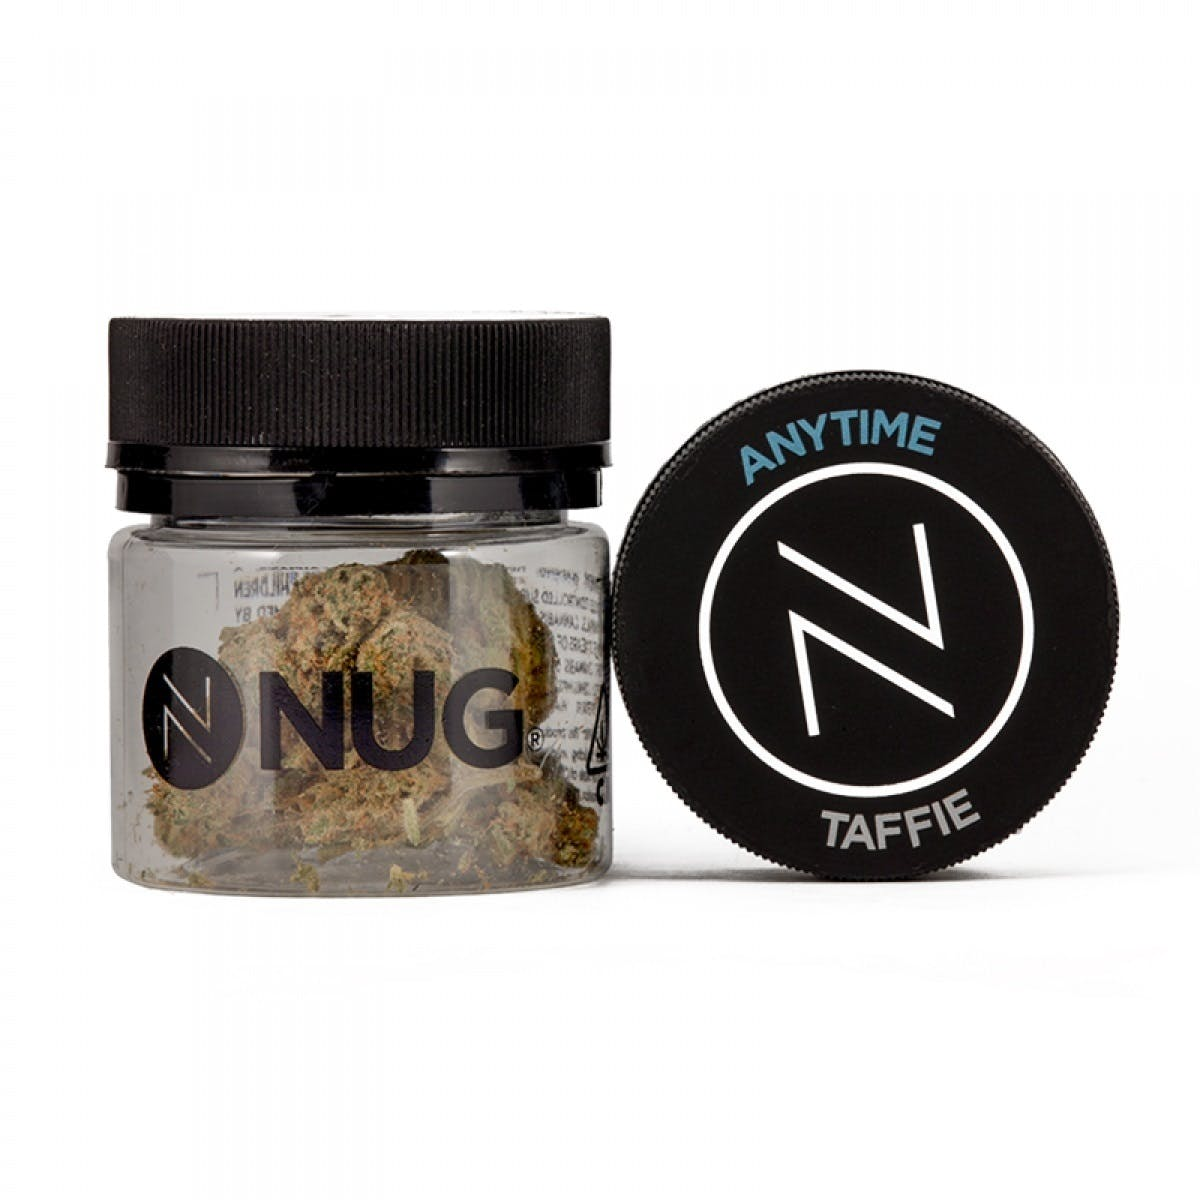 marijuana-dispensaries-h-a-i-in-northridge-nug-flower-taffie